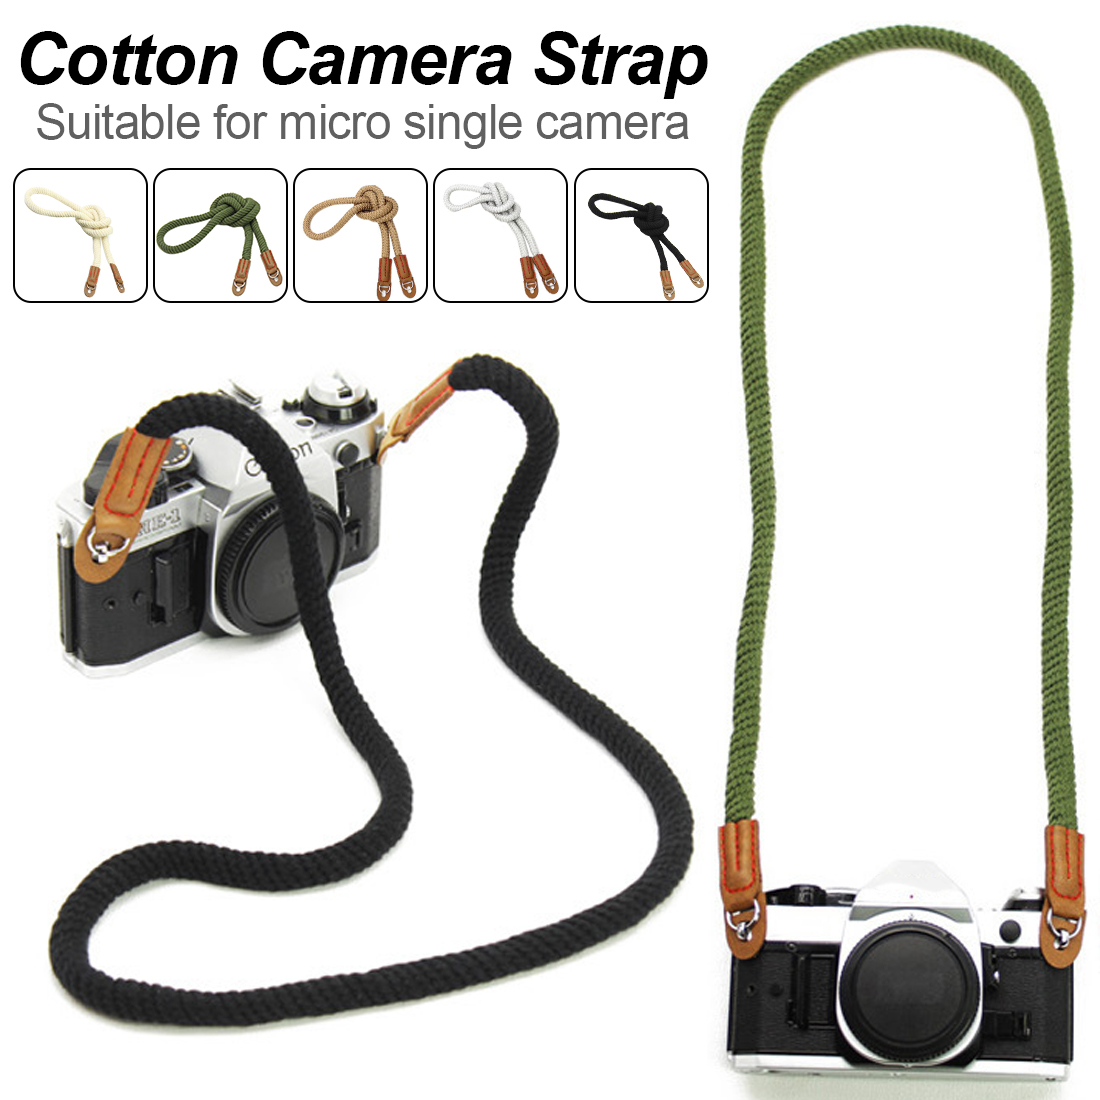 Universal Camera Elegant Cotton Tape Strap Neck Shoulder Carrying 75/100cm General Belt For Leica Canon Nikon Digital Camera image